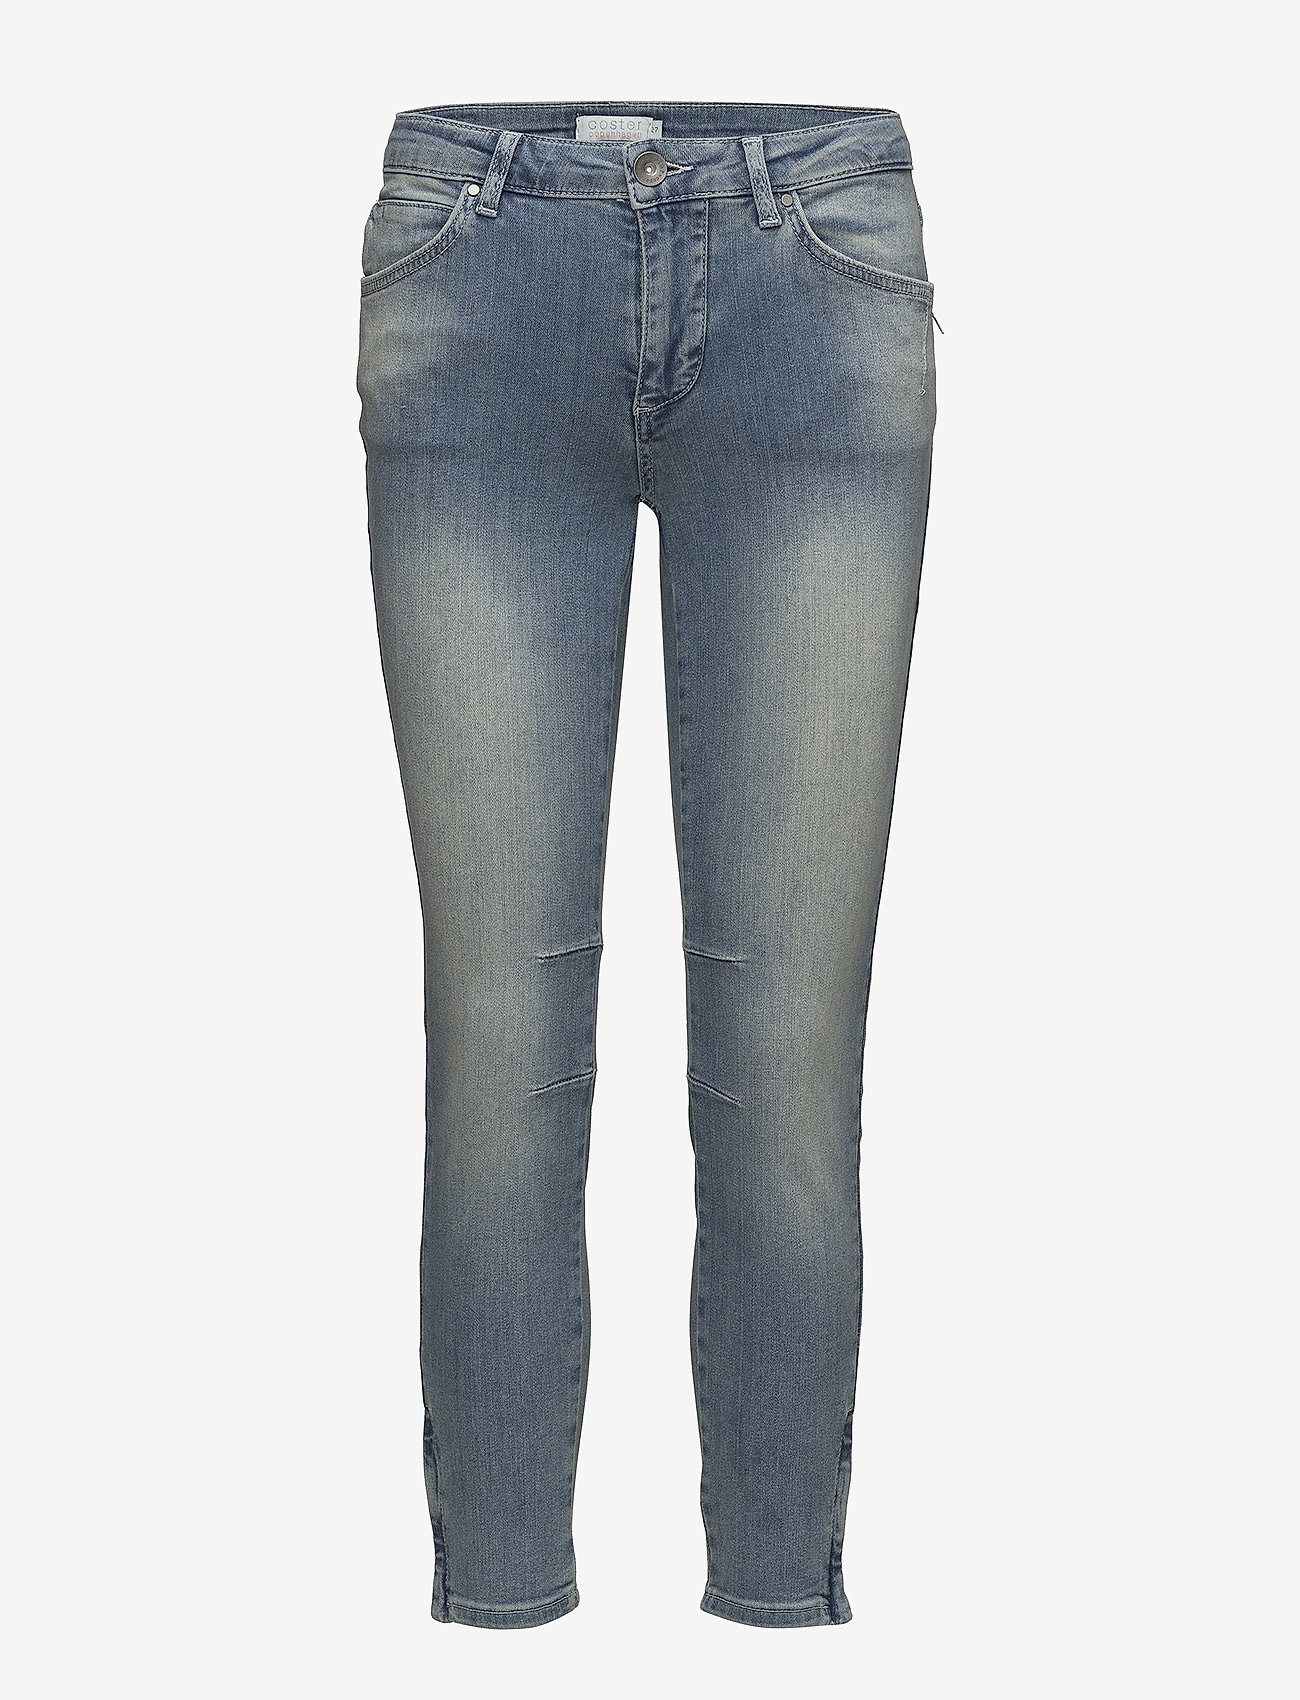 Coster Copenhagen - Slim fit jeans same as 3124 - slim jeans - washed blue - 0